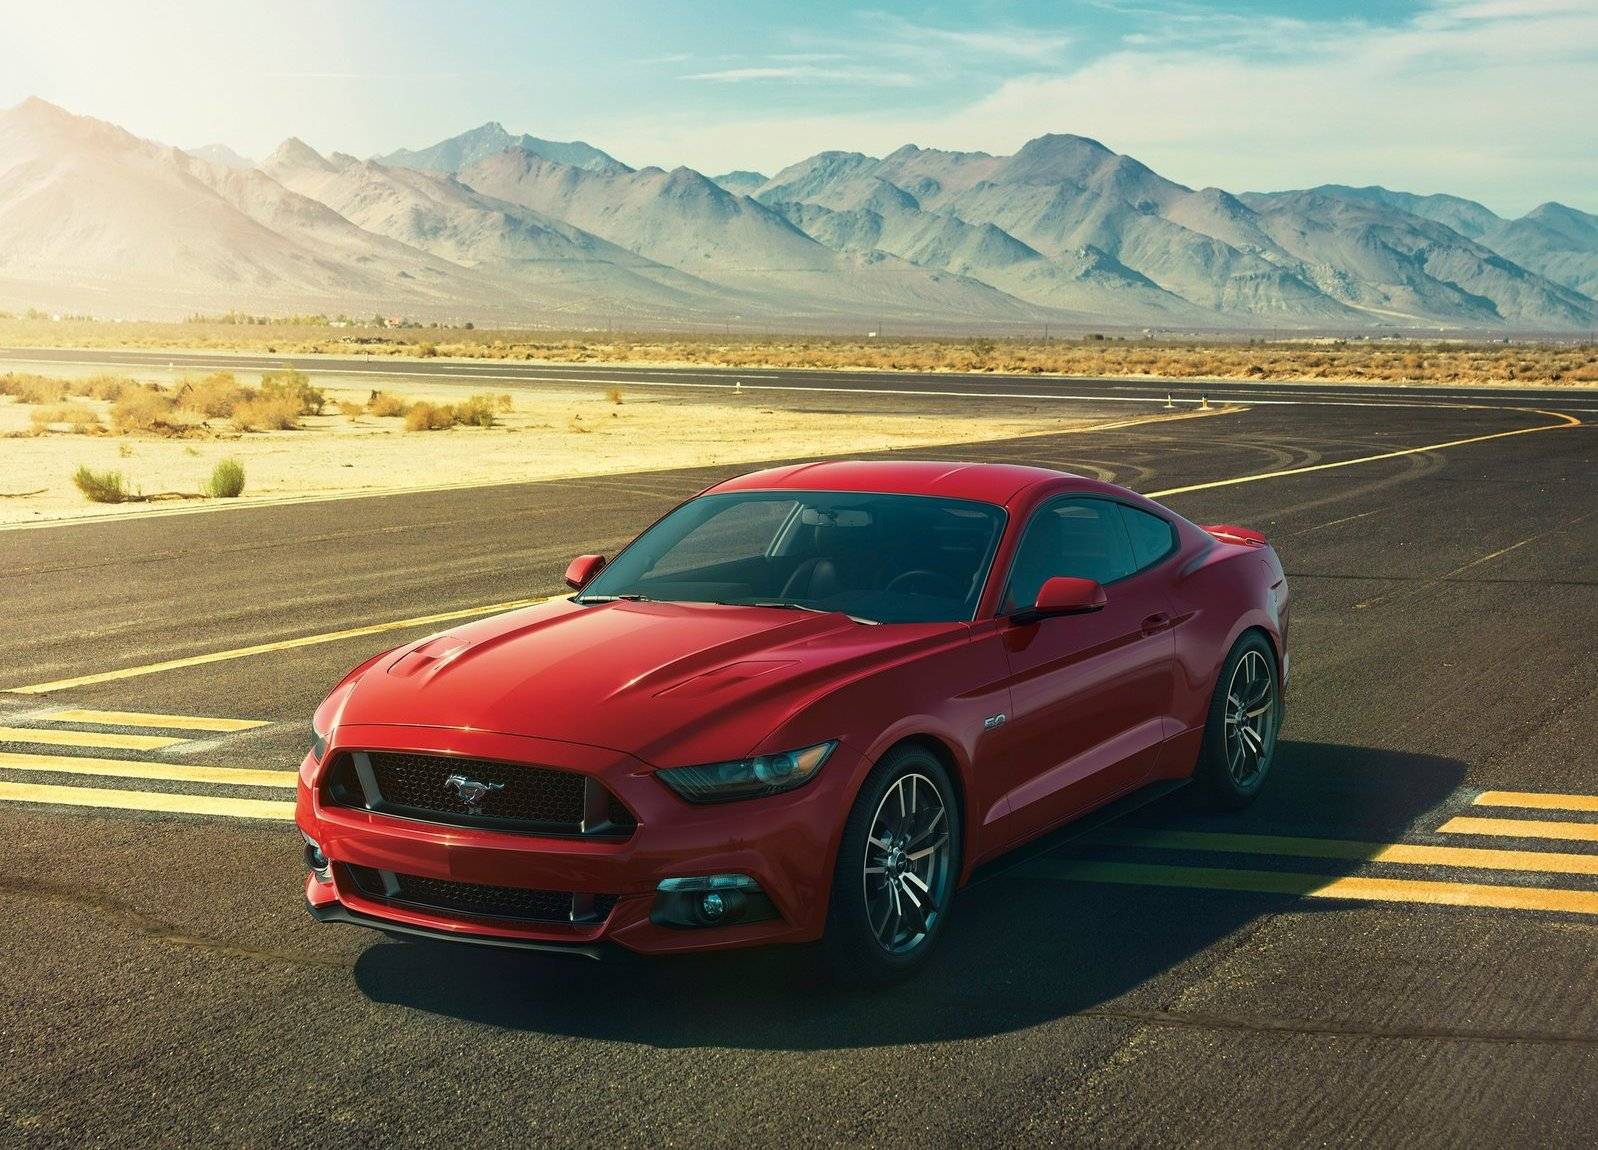 Ford-Mustang_GT_2015_1600x1200_wallpaper_05.jpg